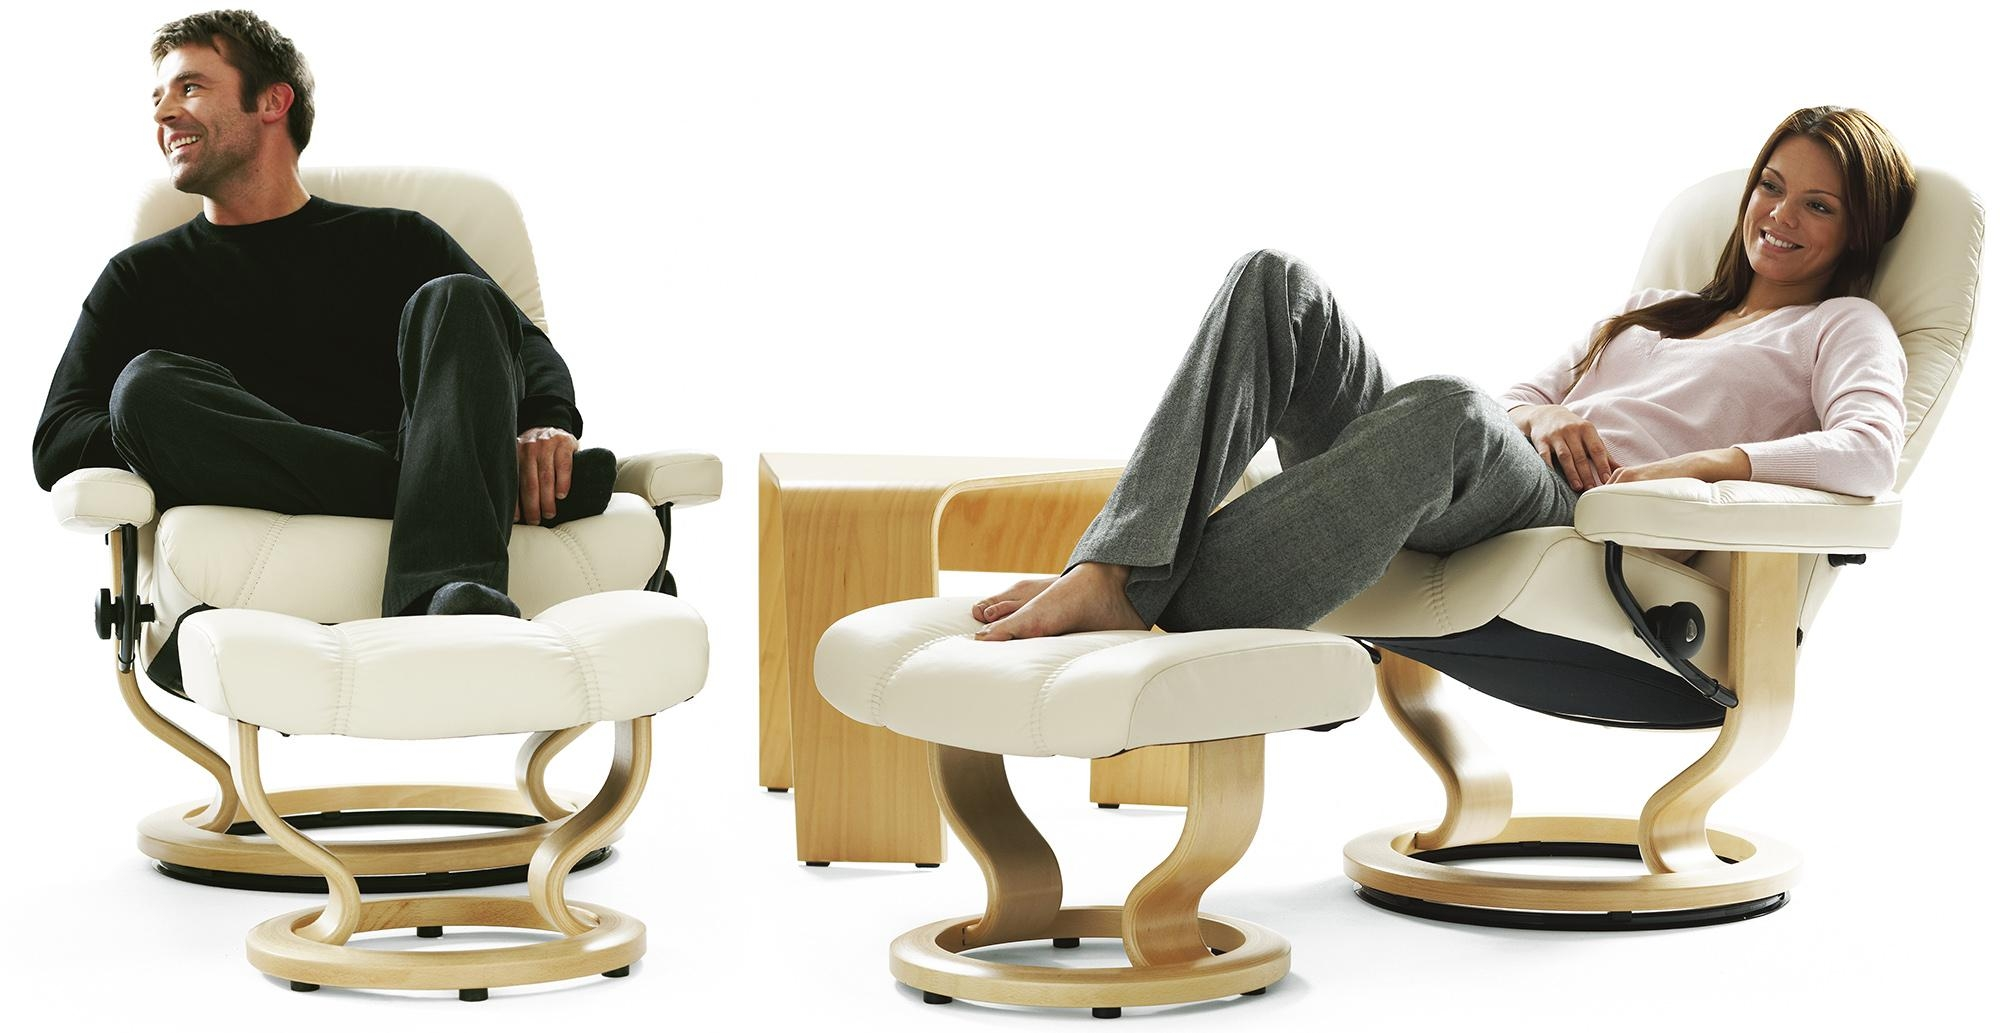 Stressless Diplomat Small Consul Recliner Chair Ergonomic Lounger Within Ergonomic Sofas And Chairs (View 15 of 20)